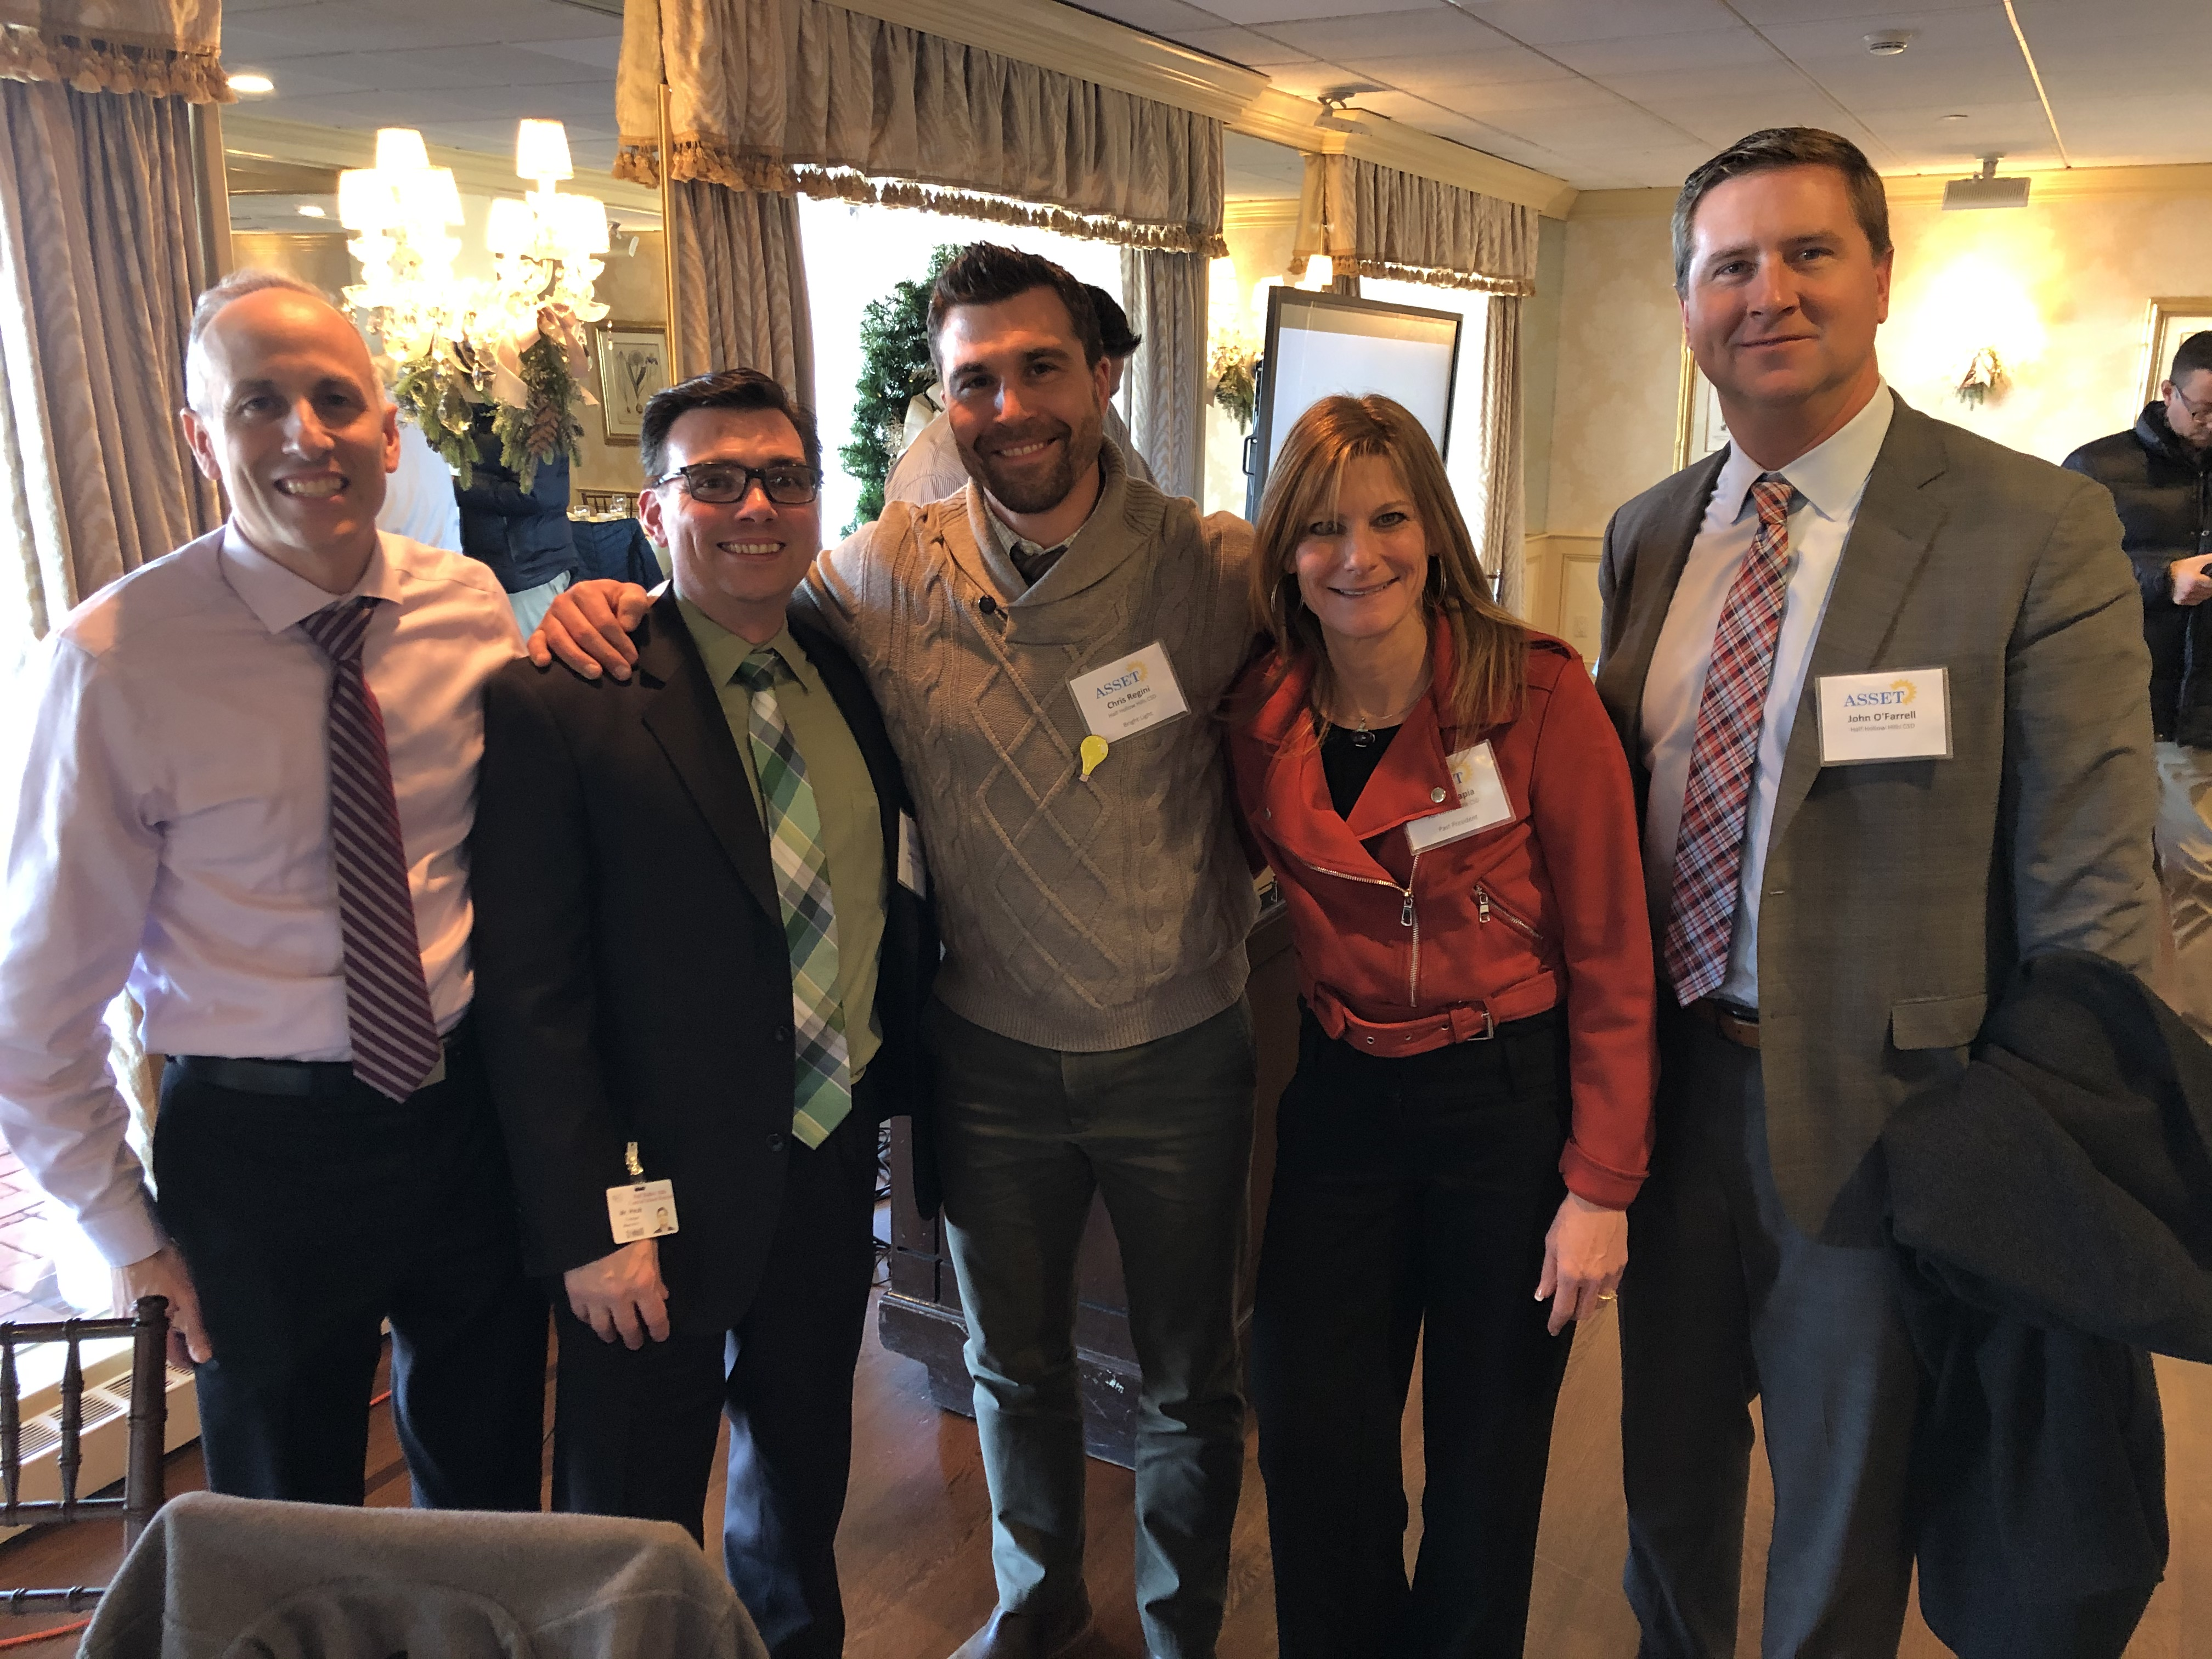 West Hollow's Mr. Regini Honored As Bright Light By ASSET